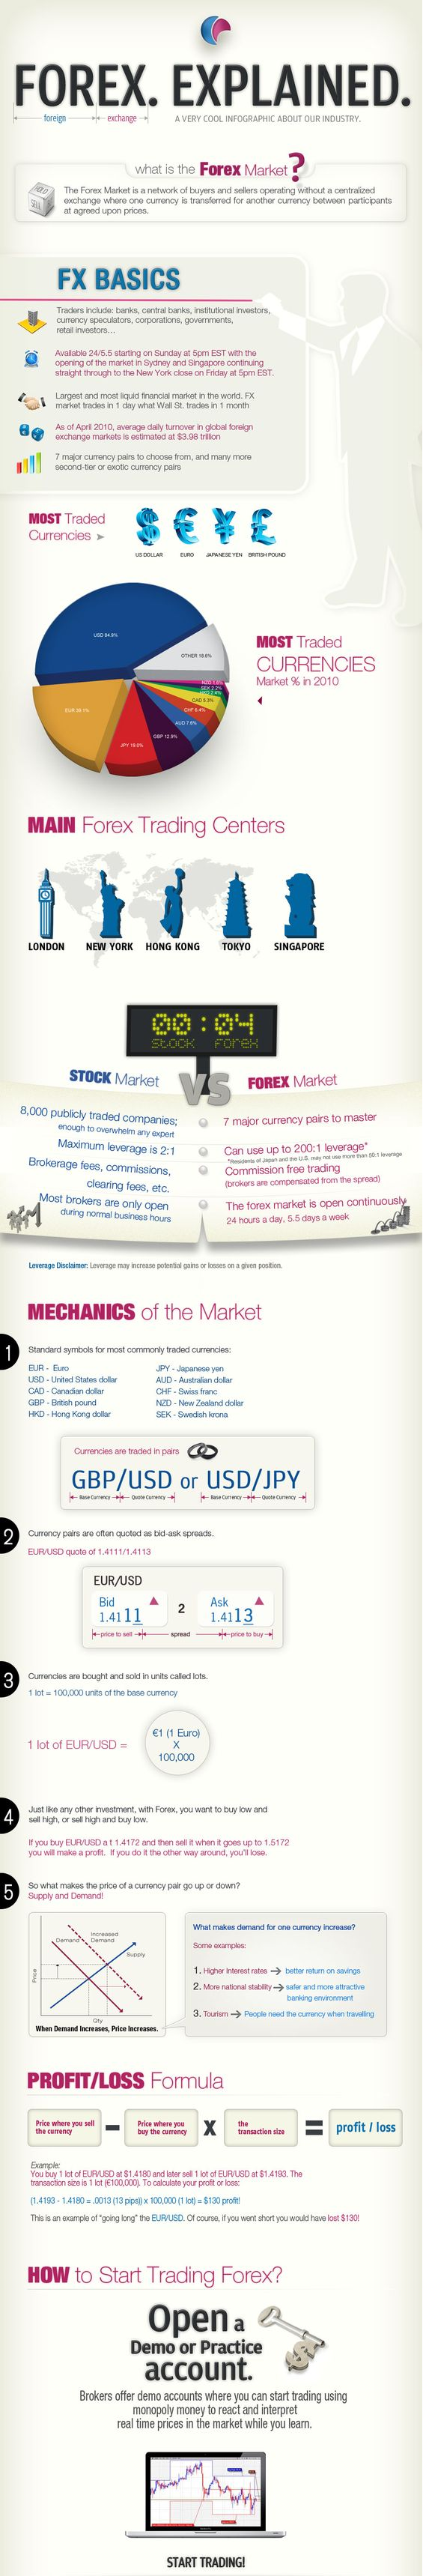 Current Scenario of Forex Trading Business